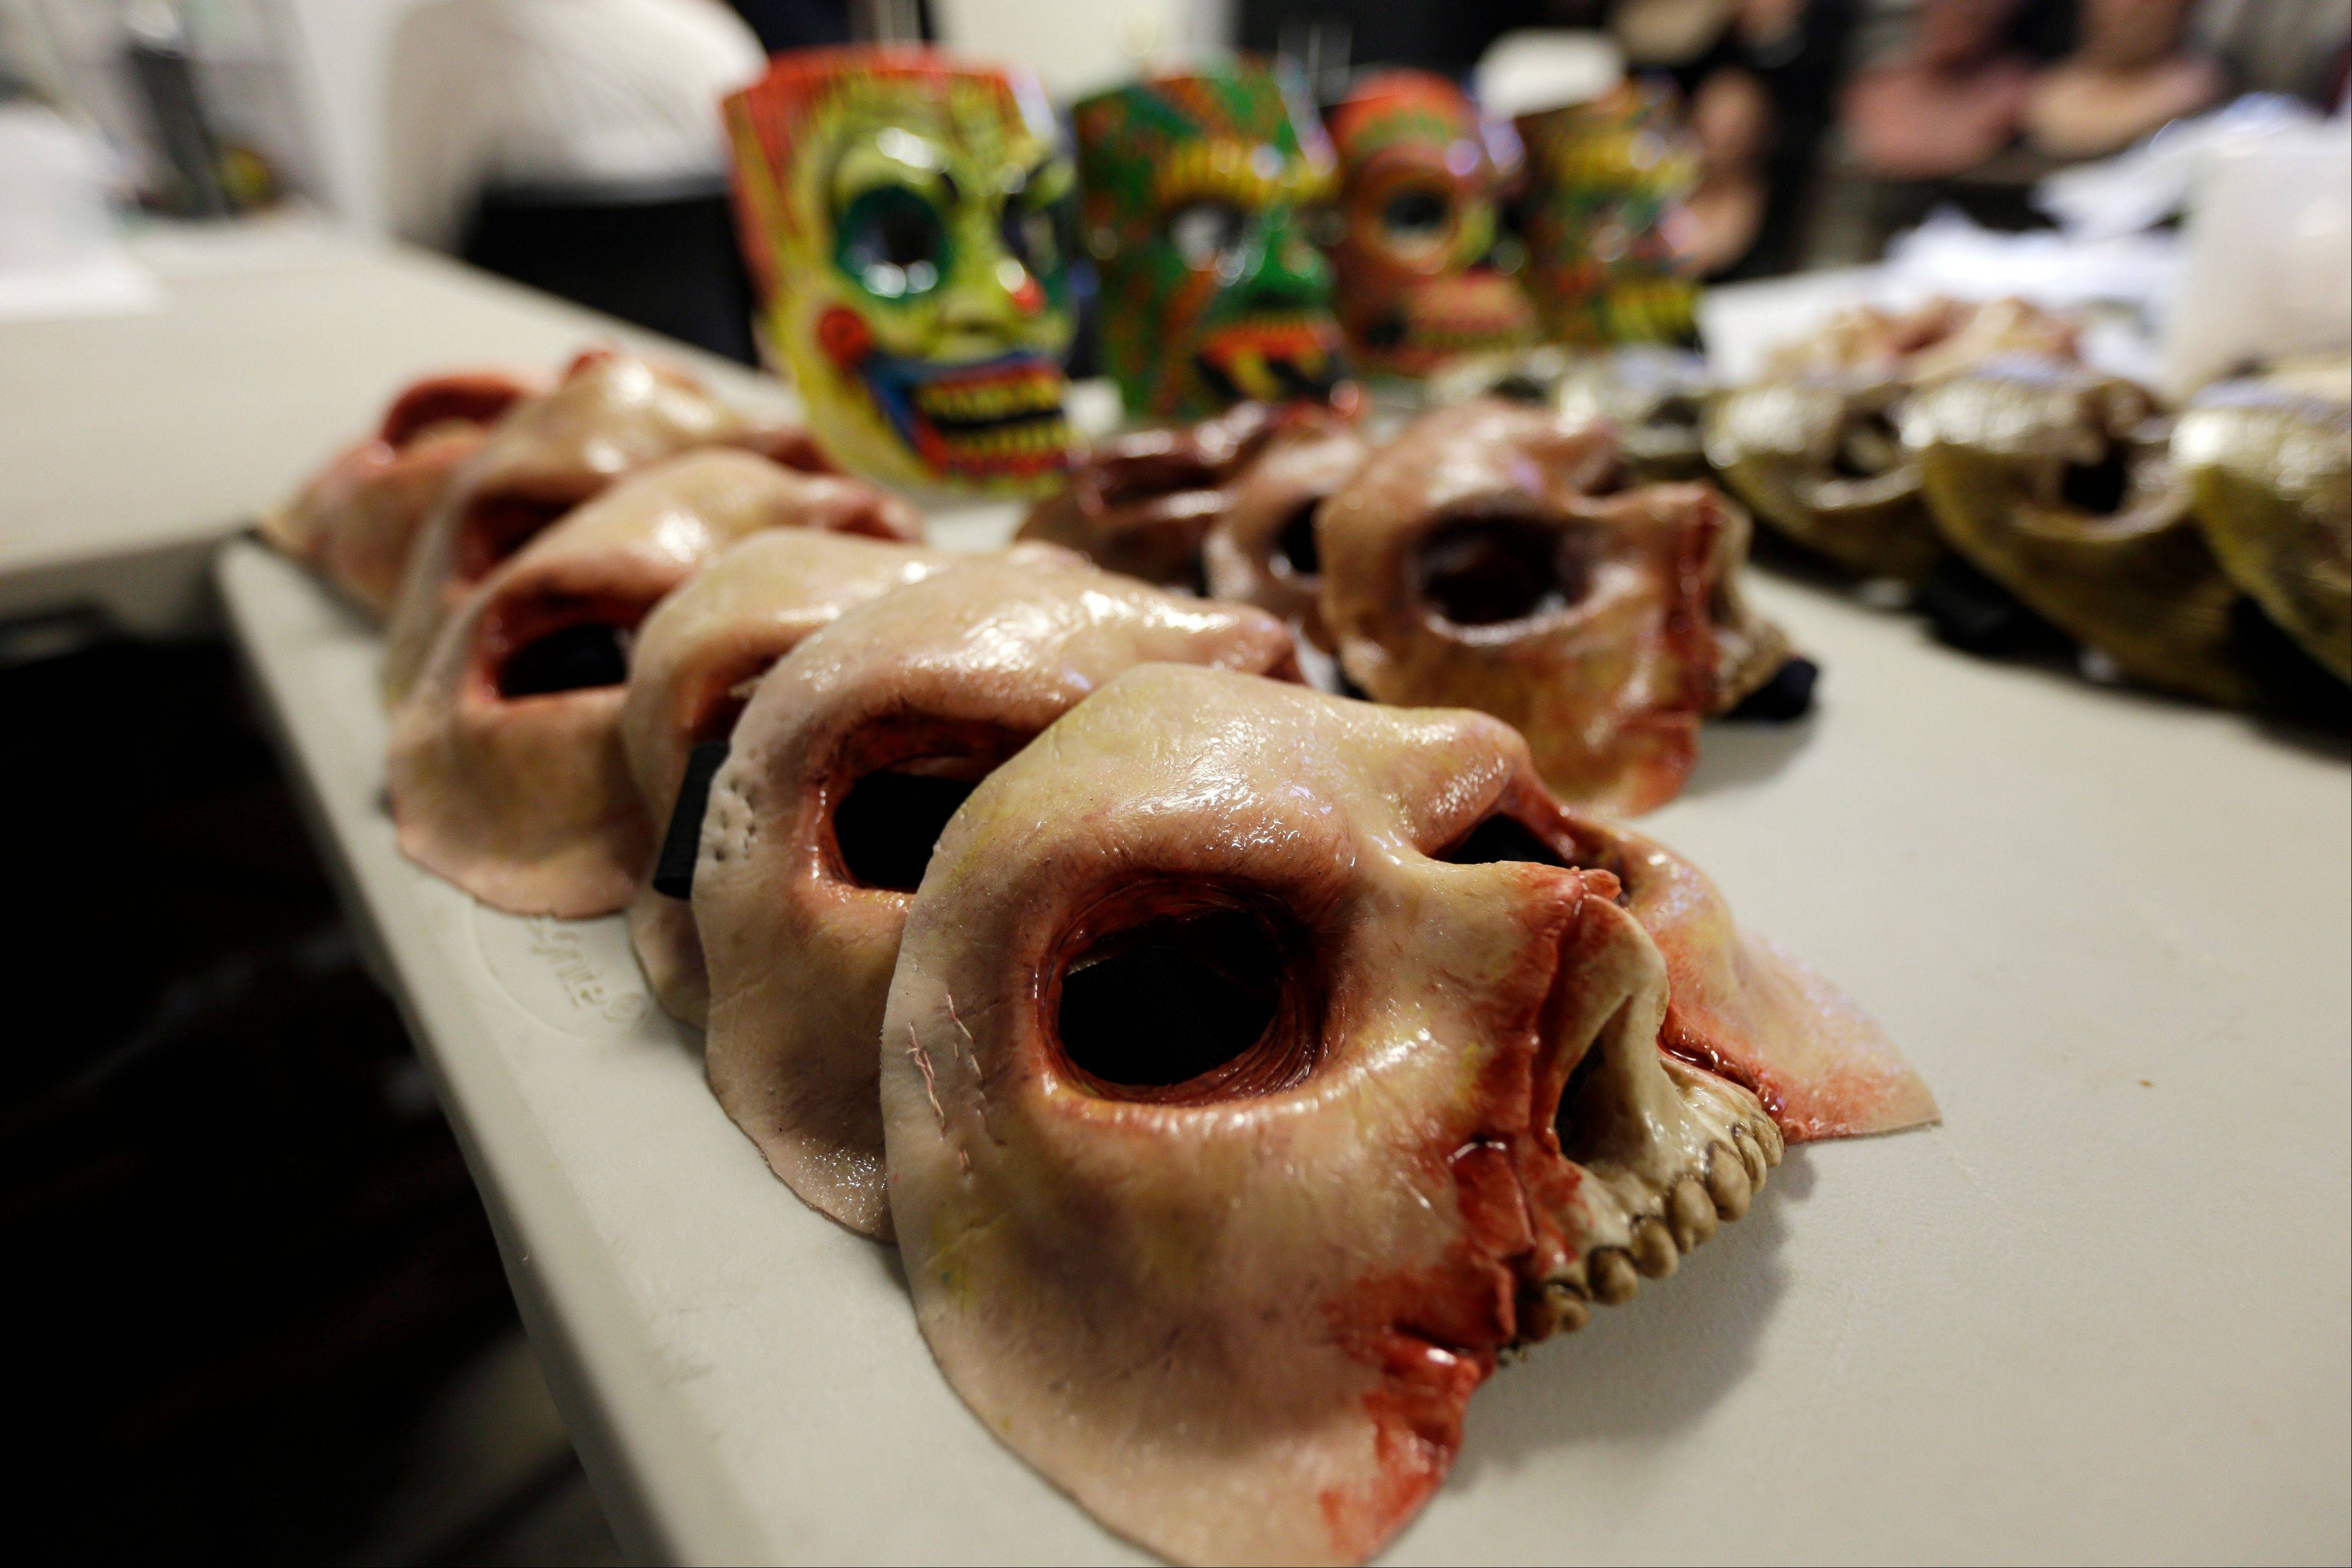 Masks await actors in the makeup room behind the scenes at Terror Behind the Walls. The haunted house is scheduled to run through Nov. 9.